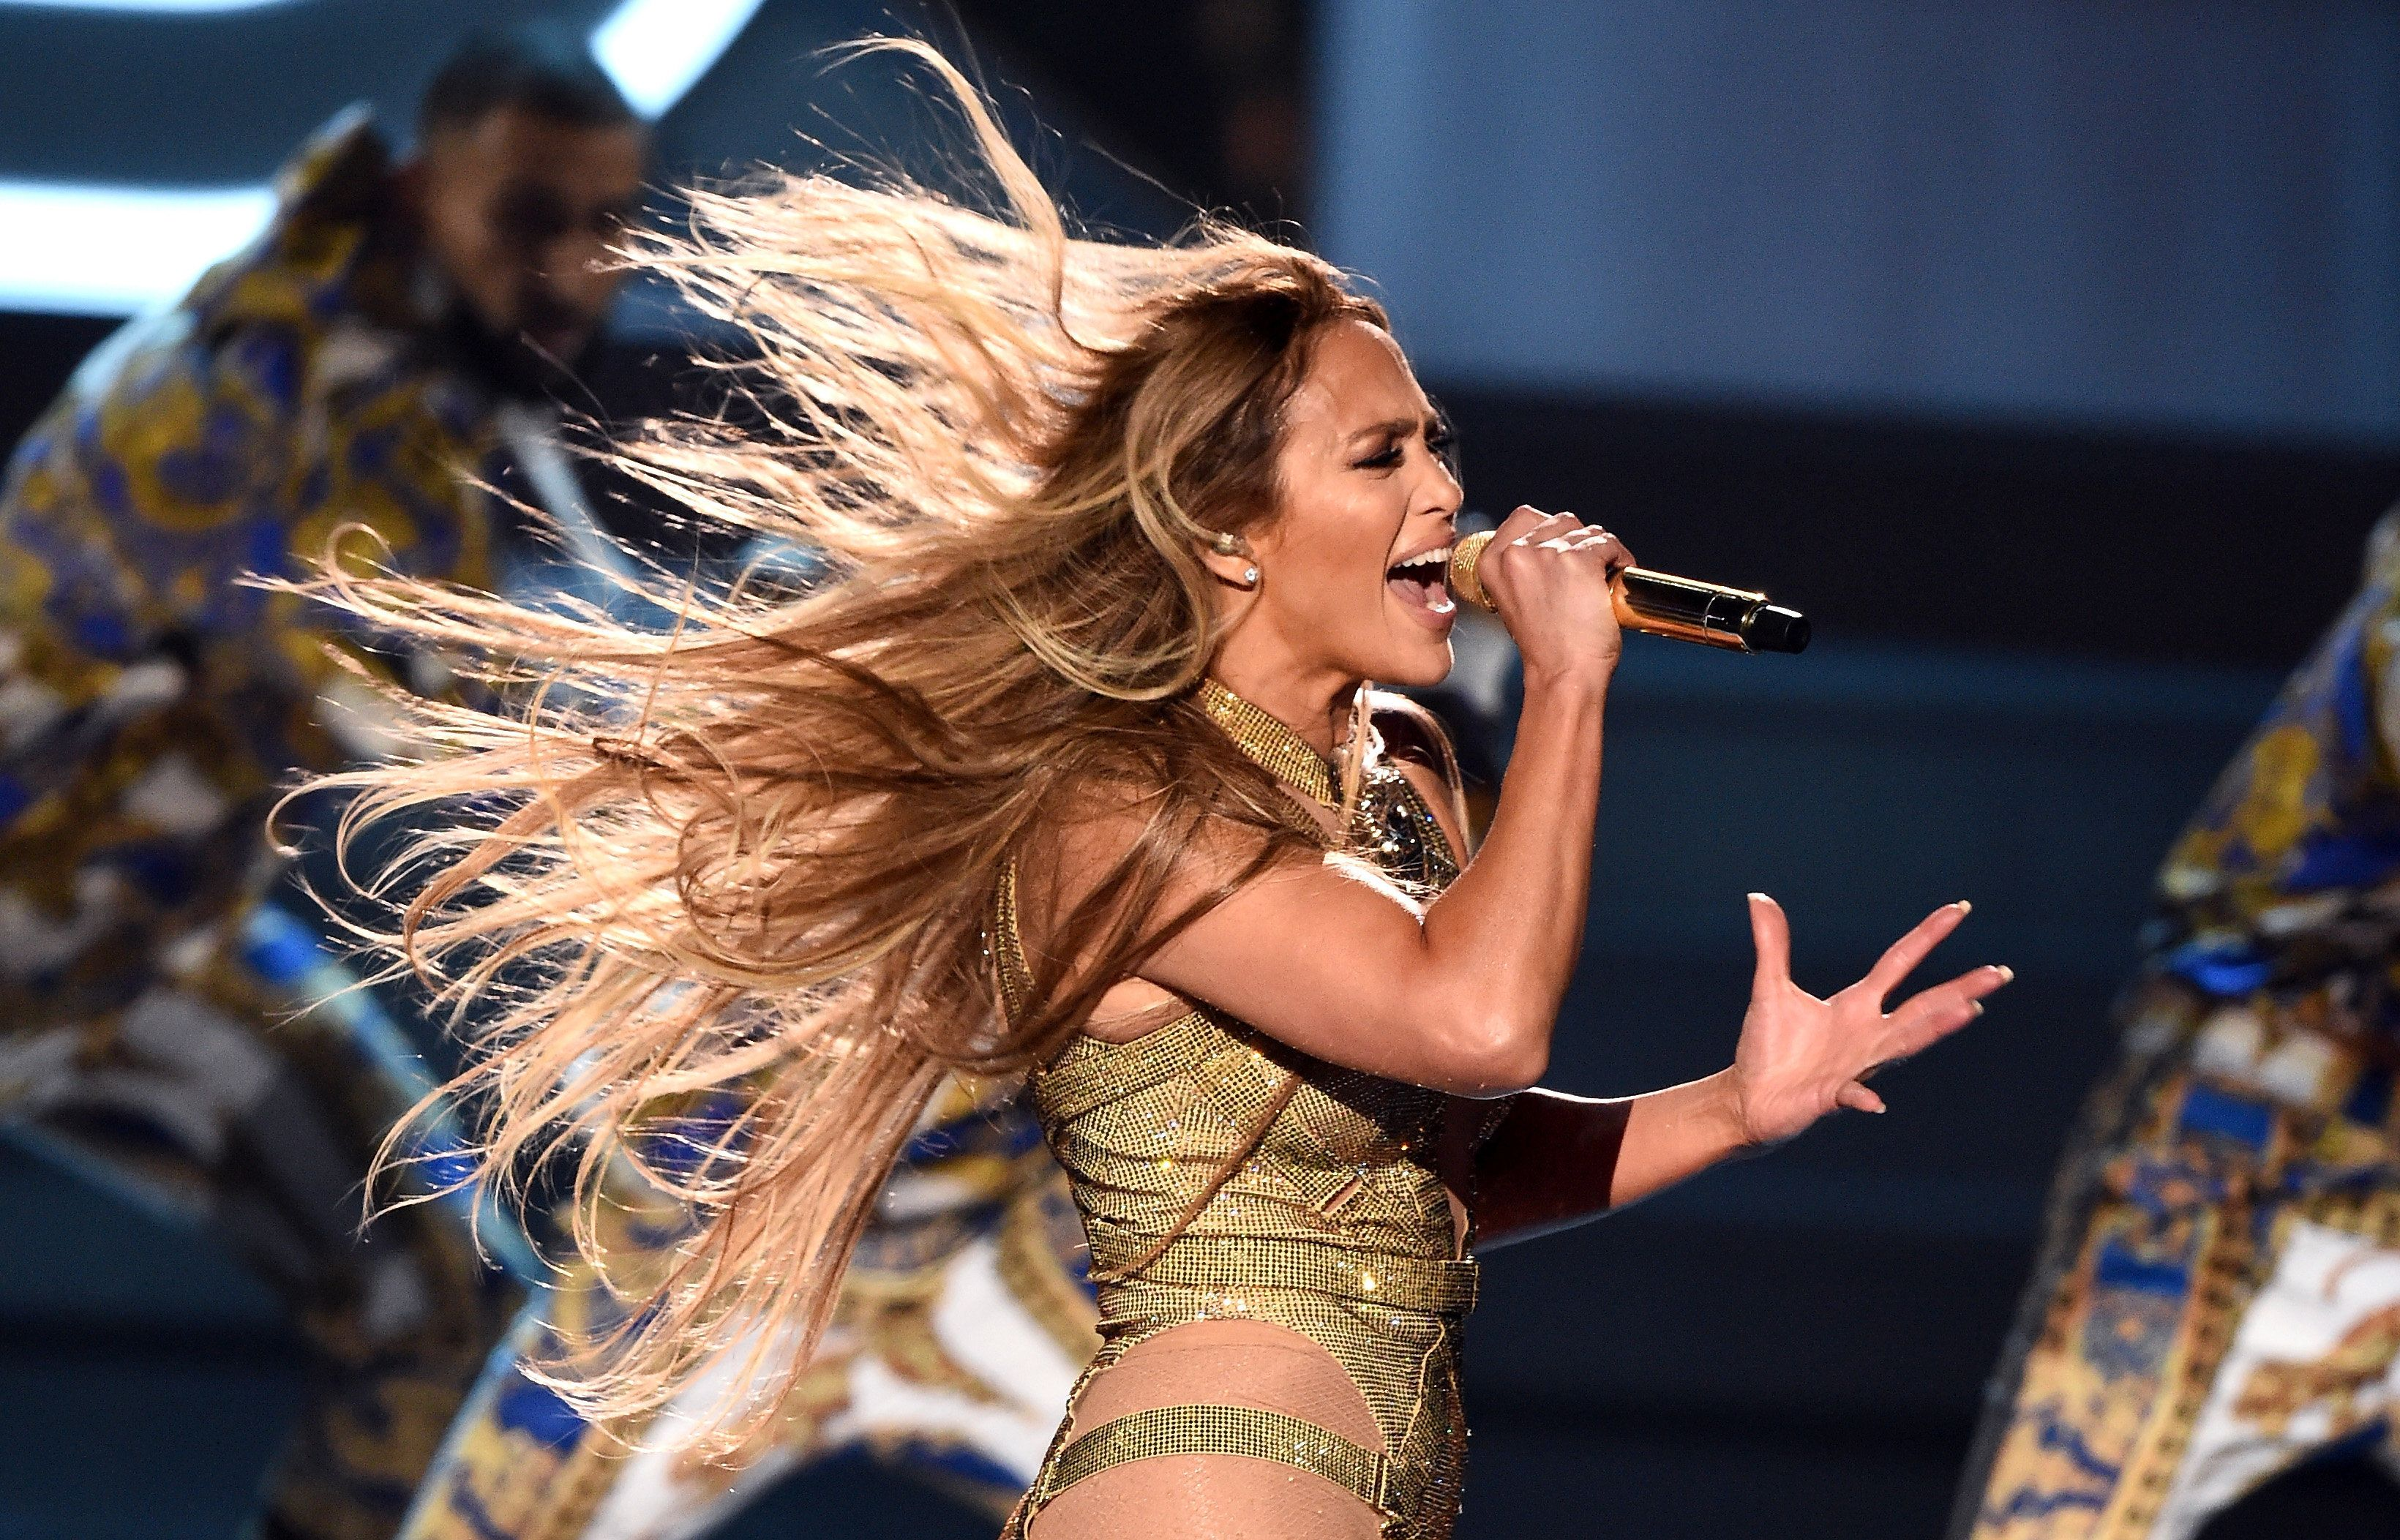 NEW YORK, NY - AUGUST 20:  Jennifer Lopez performs onstage during the 2018 MTV Video Music Awards at Radio City Music Hall on August 20, 2018 in New York City.  (Photo by Michael Loccisano/Getty Images for MTV)